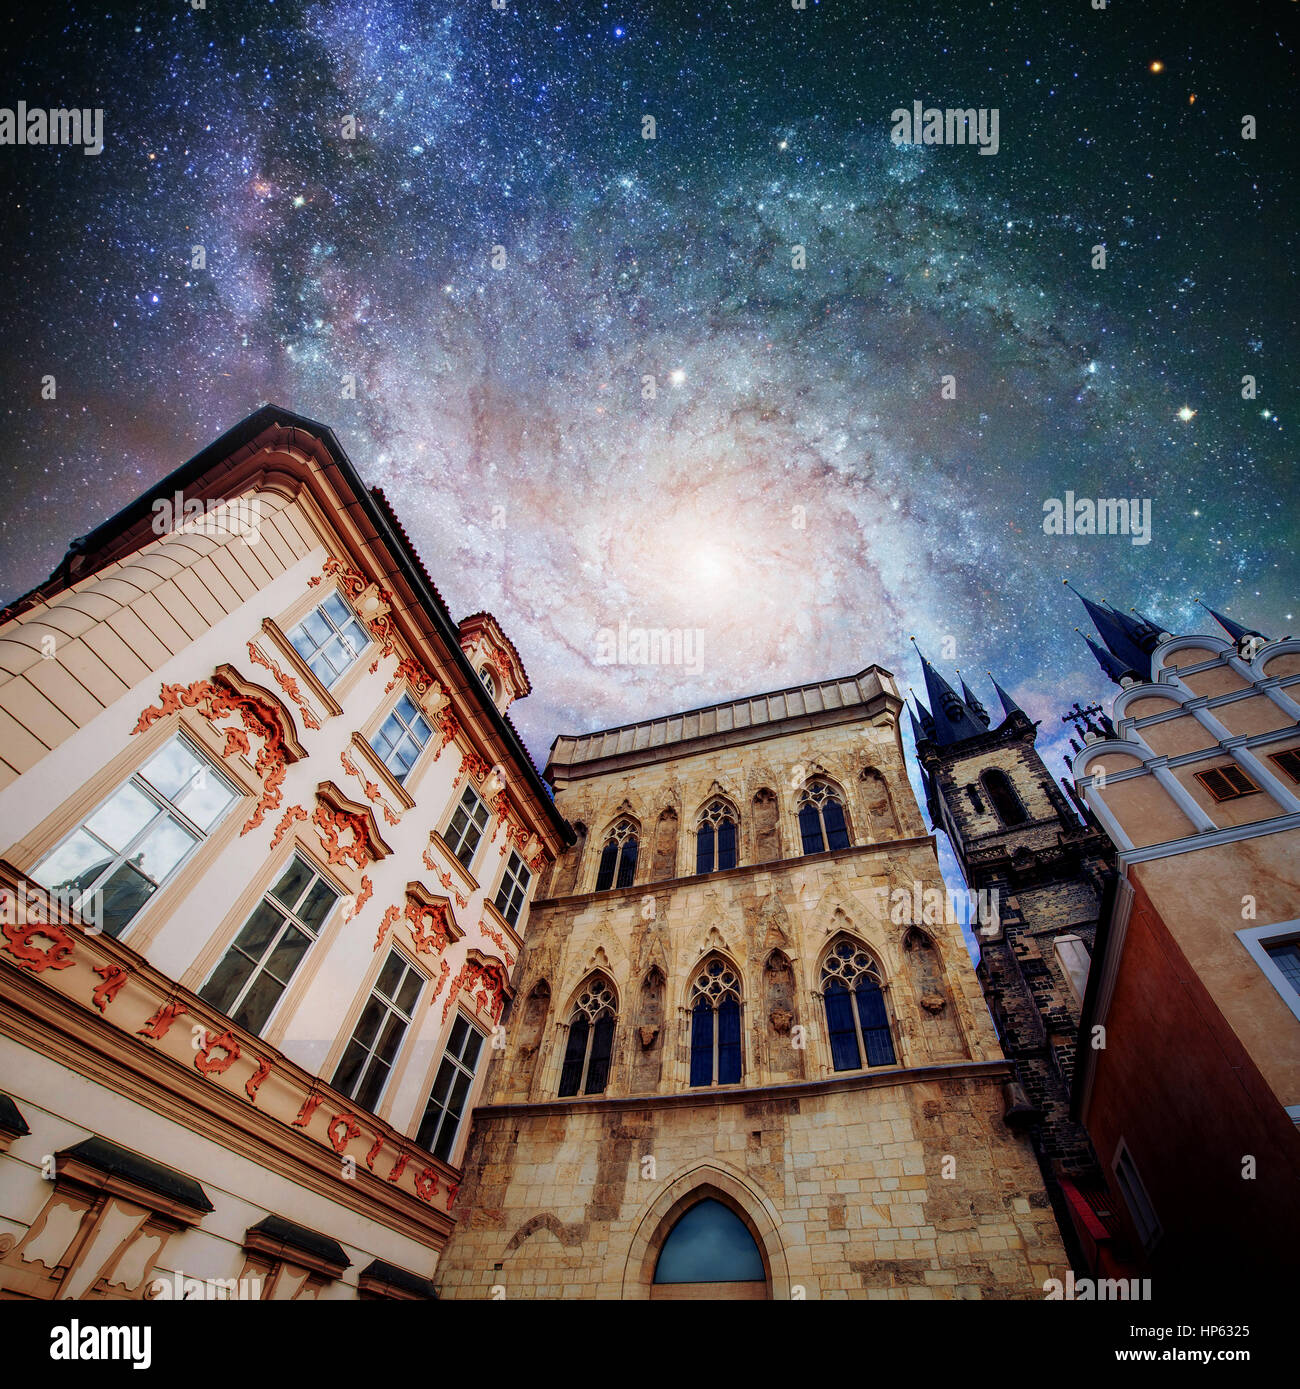 Fantastic starry sky and the milky way. Beautiful houses Czech R - Stock Image